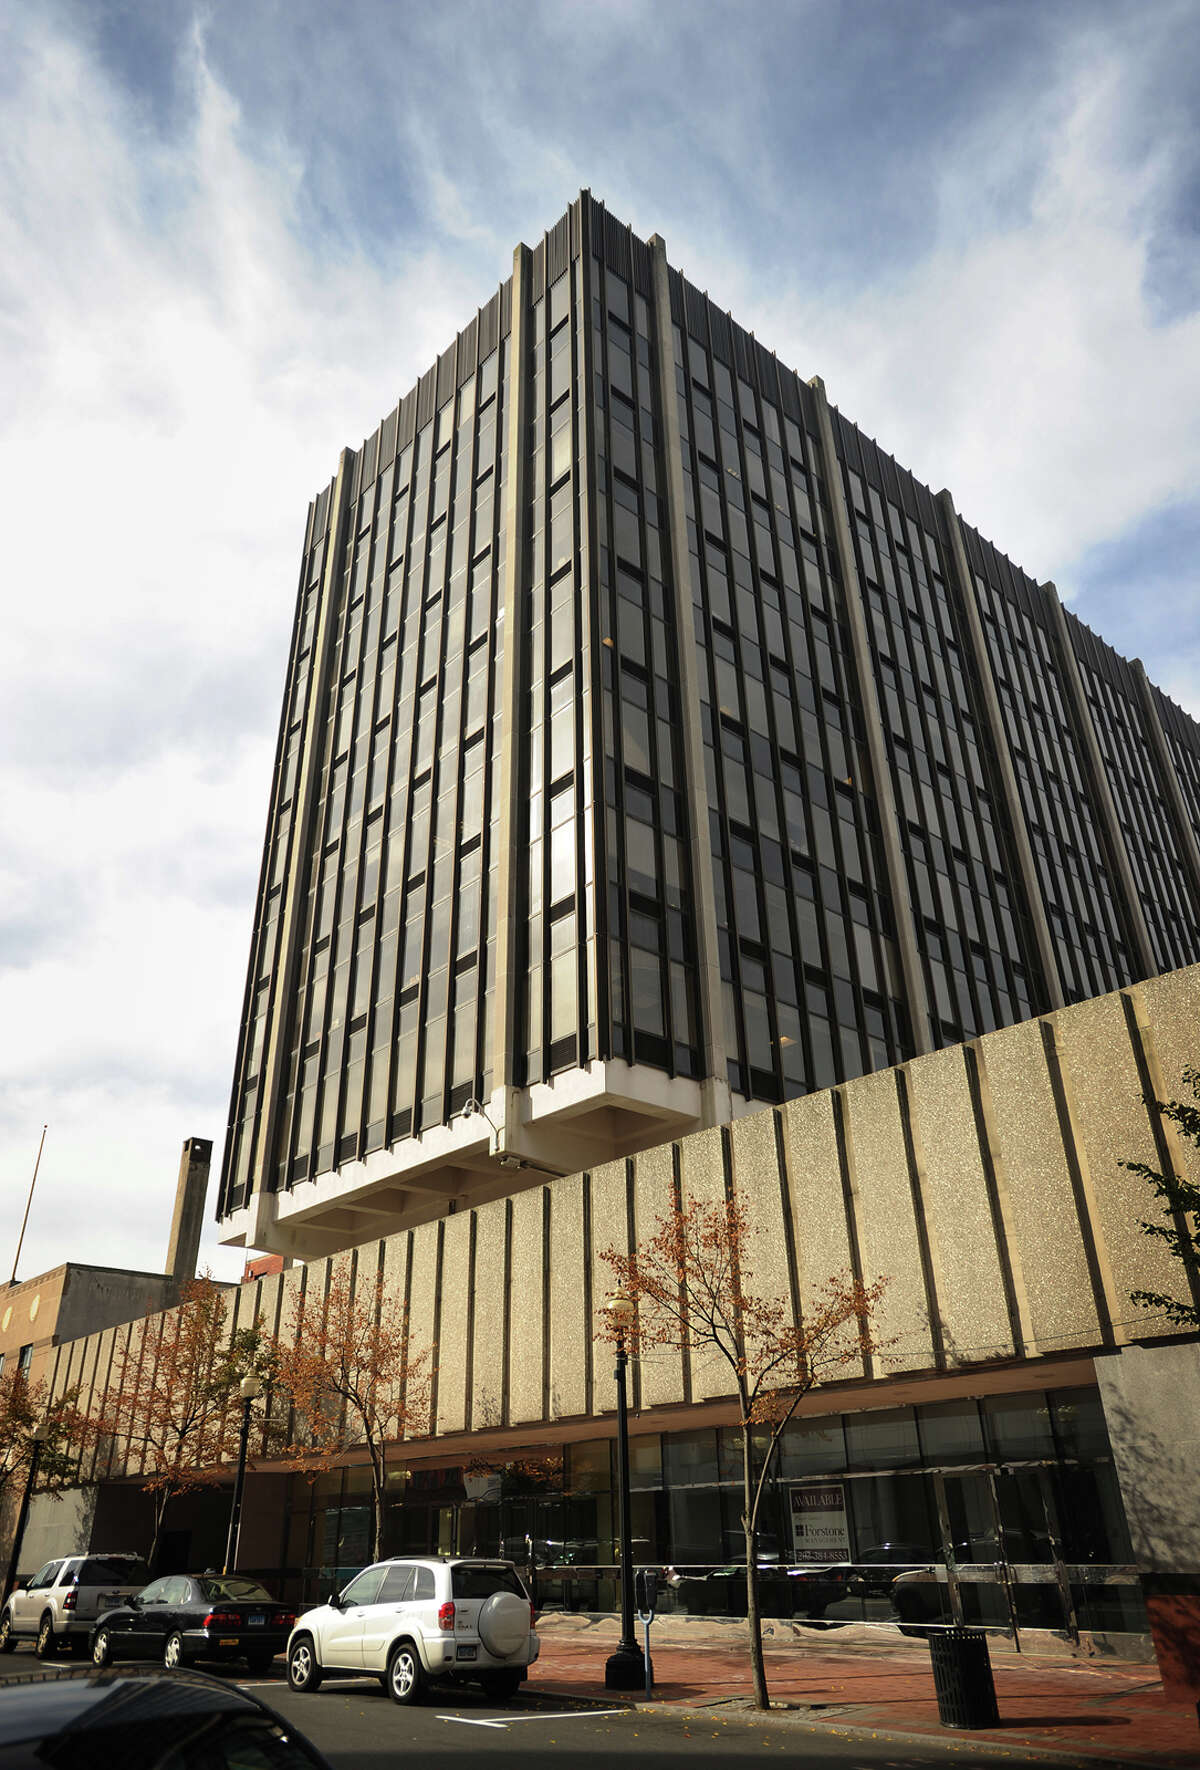 855 Main Street in downtown Bridgeport, Conn. is one of several city buildings being developed by Forstone Capital.